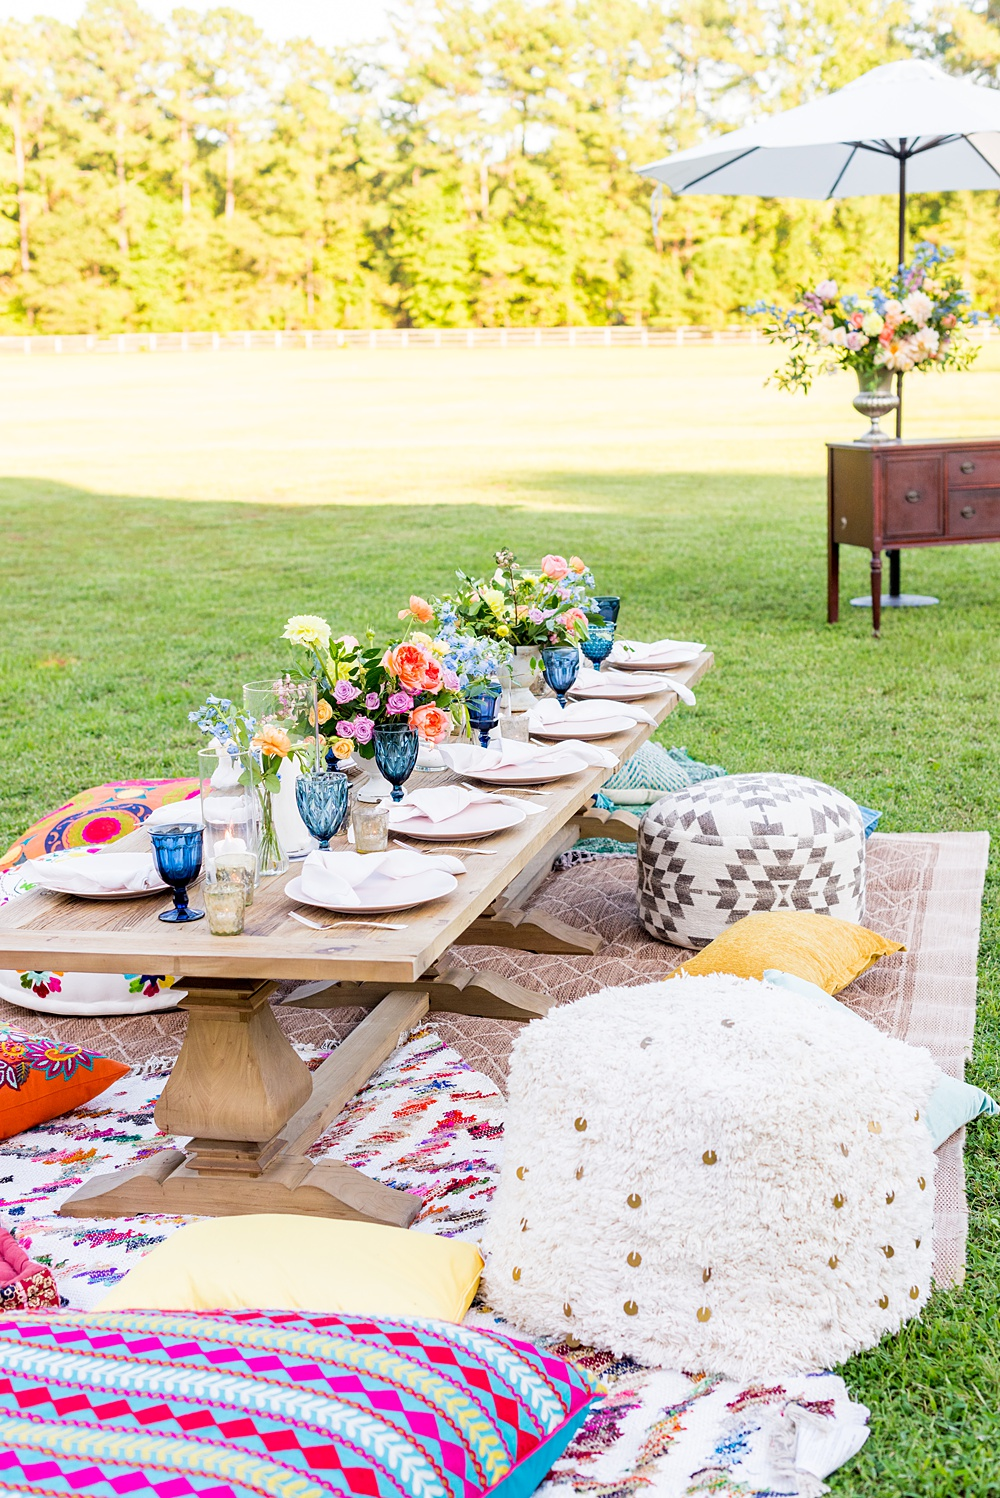 Step inside this colorful outdoor bohemian thirtieth birthday party. Full of color, and the yummiest vegan unicorn confetti cakes you ever did find! Click through for the details. Mikkel Paige Photography #gardenparty #birthdayparty #bohemianparty #unicornparty #styledshoot #backyardparty #flowers | glitterinc.com | @glitterinc